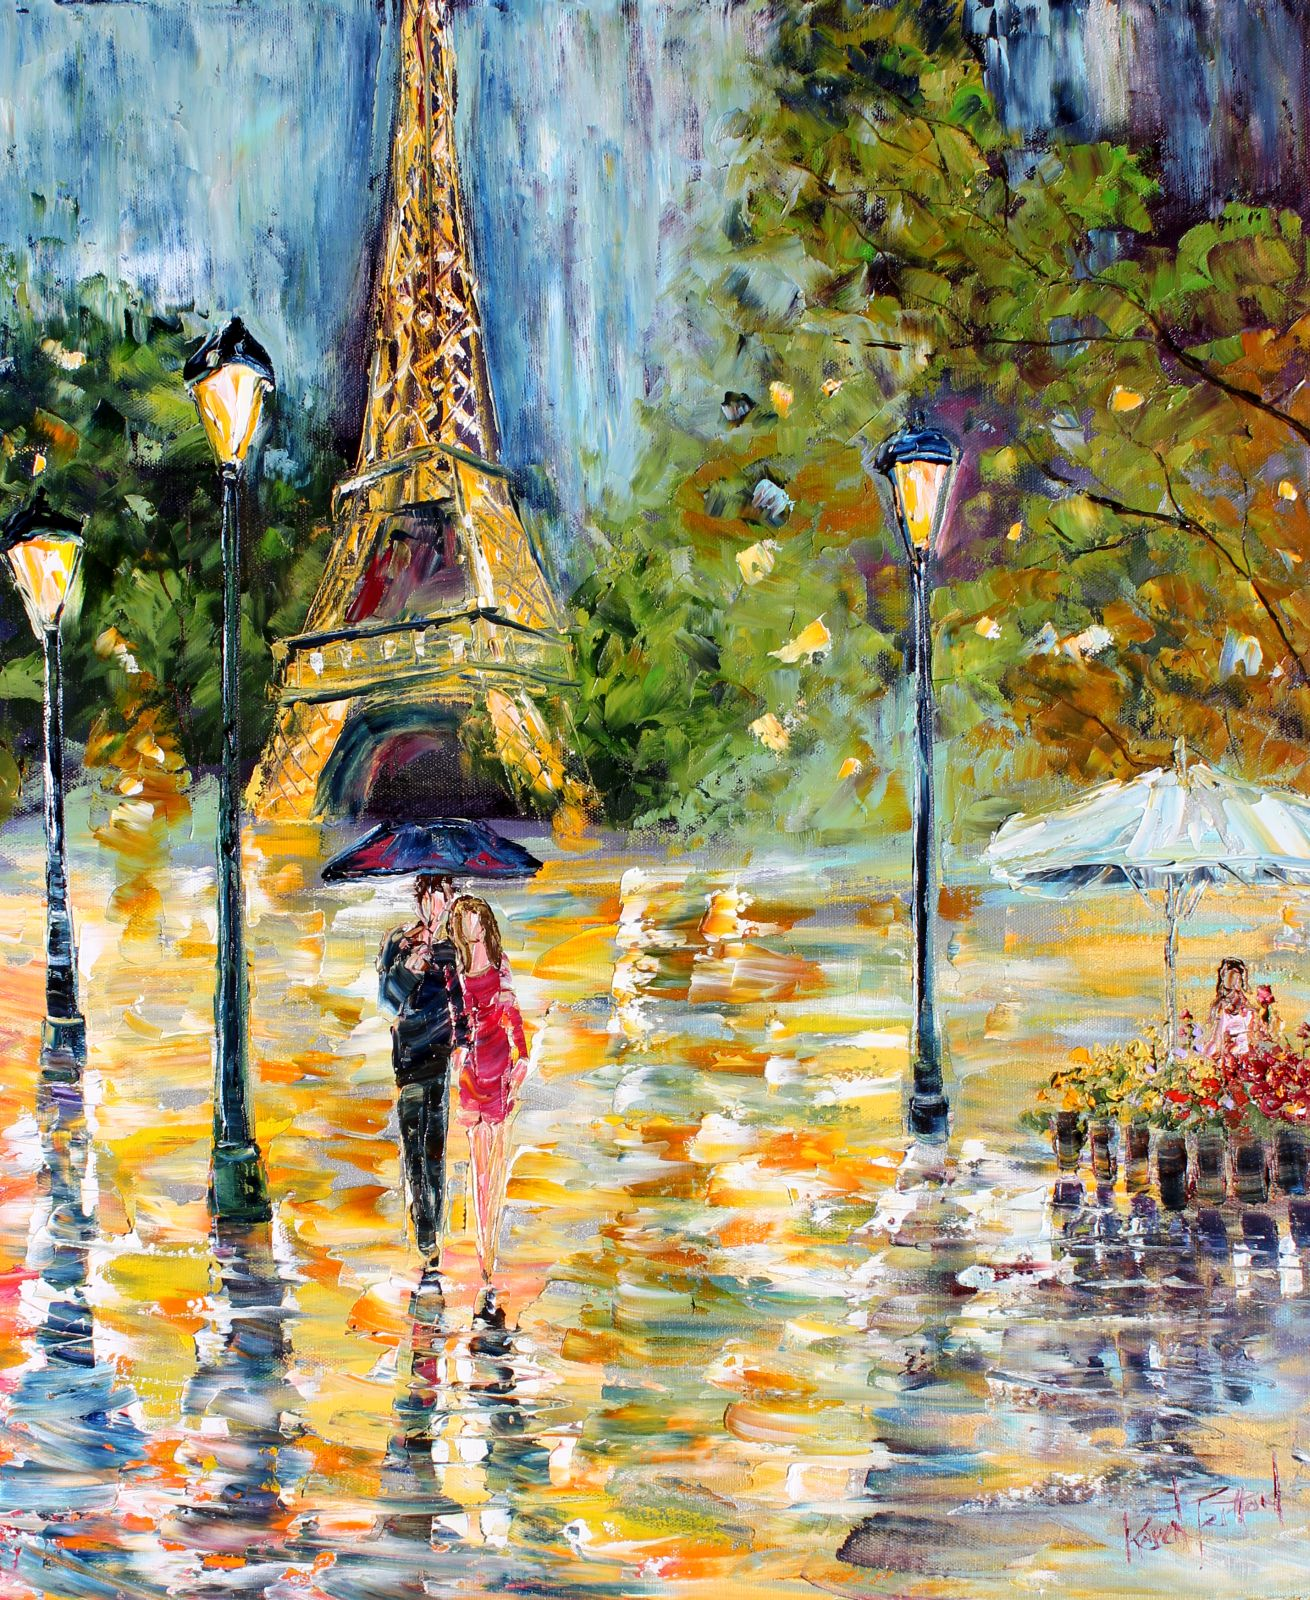 Impressionism Paris: Palette Knife Painters, International: Original Oil